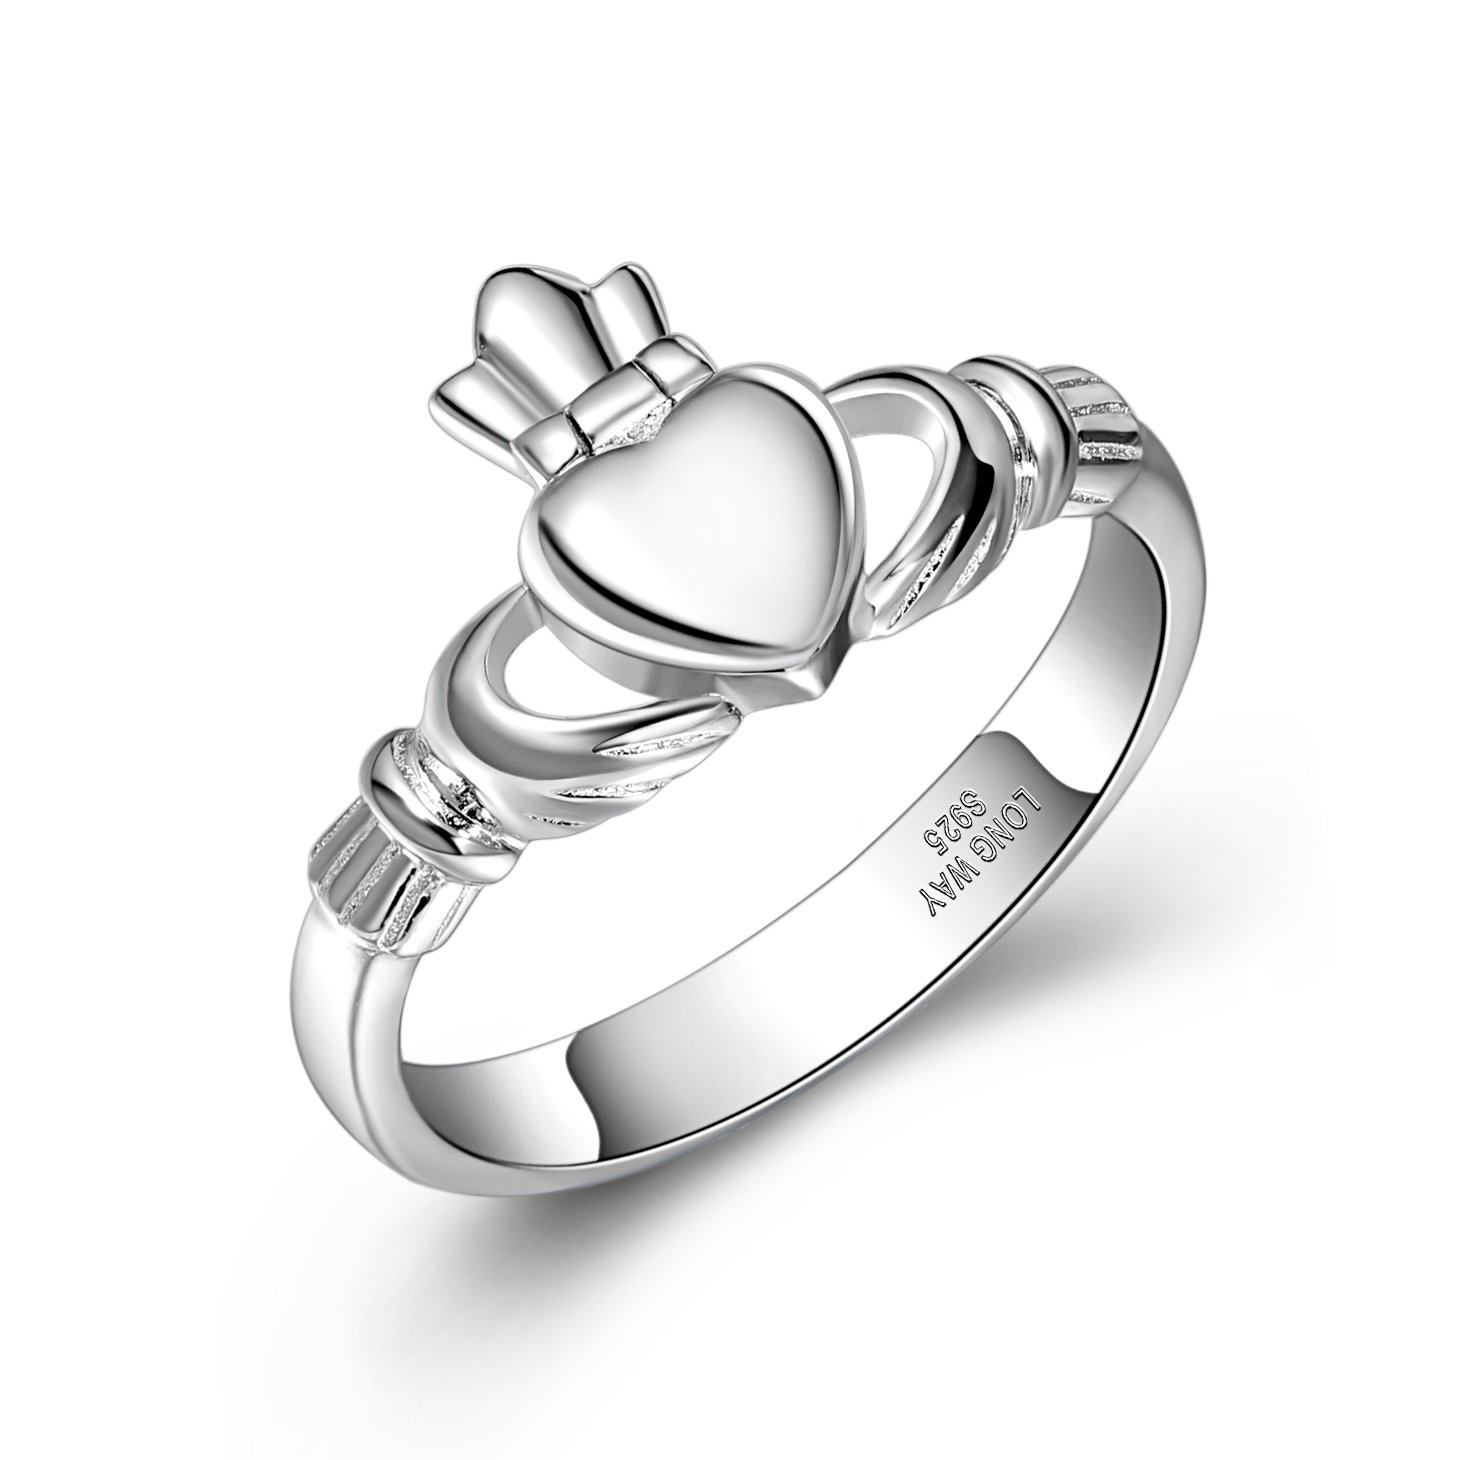 Claddagh Ring,Long Way S925 Sterling Silver Ireland Love Heart Hand Friendship Ring for Women (9)